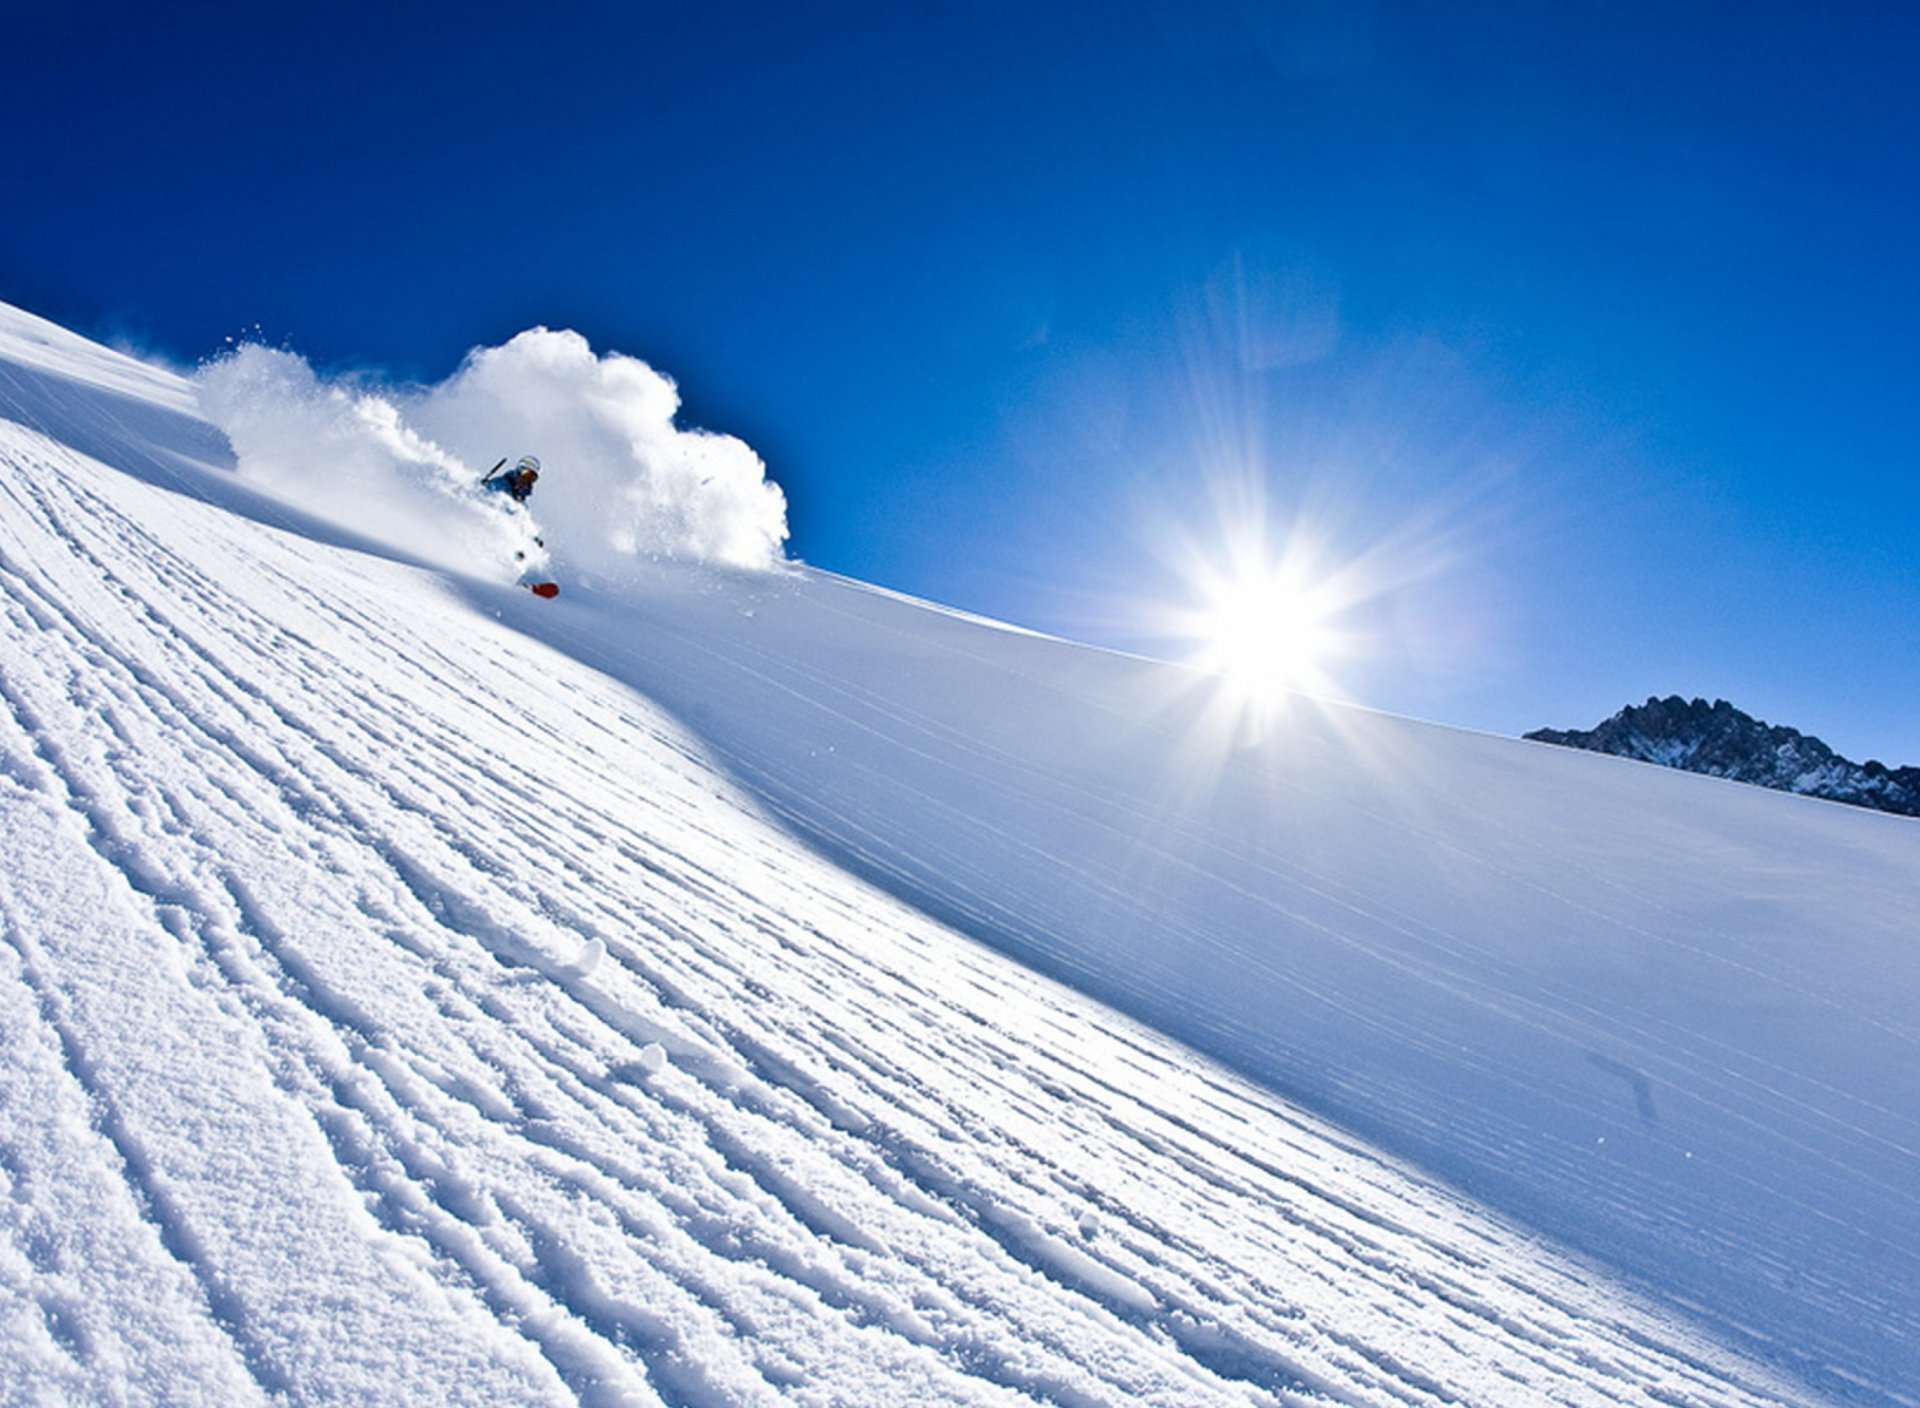 SKIING winter snow ski mountains wallpaper | 1920x1408 ...